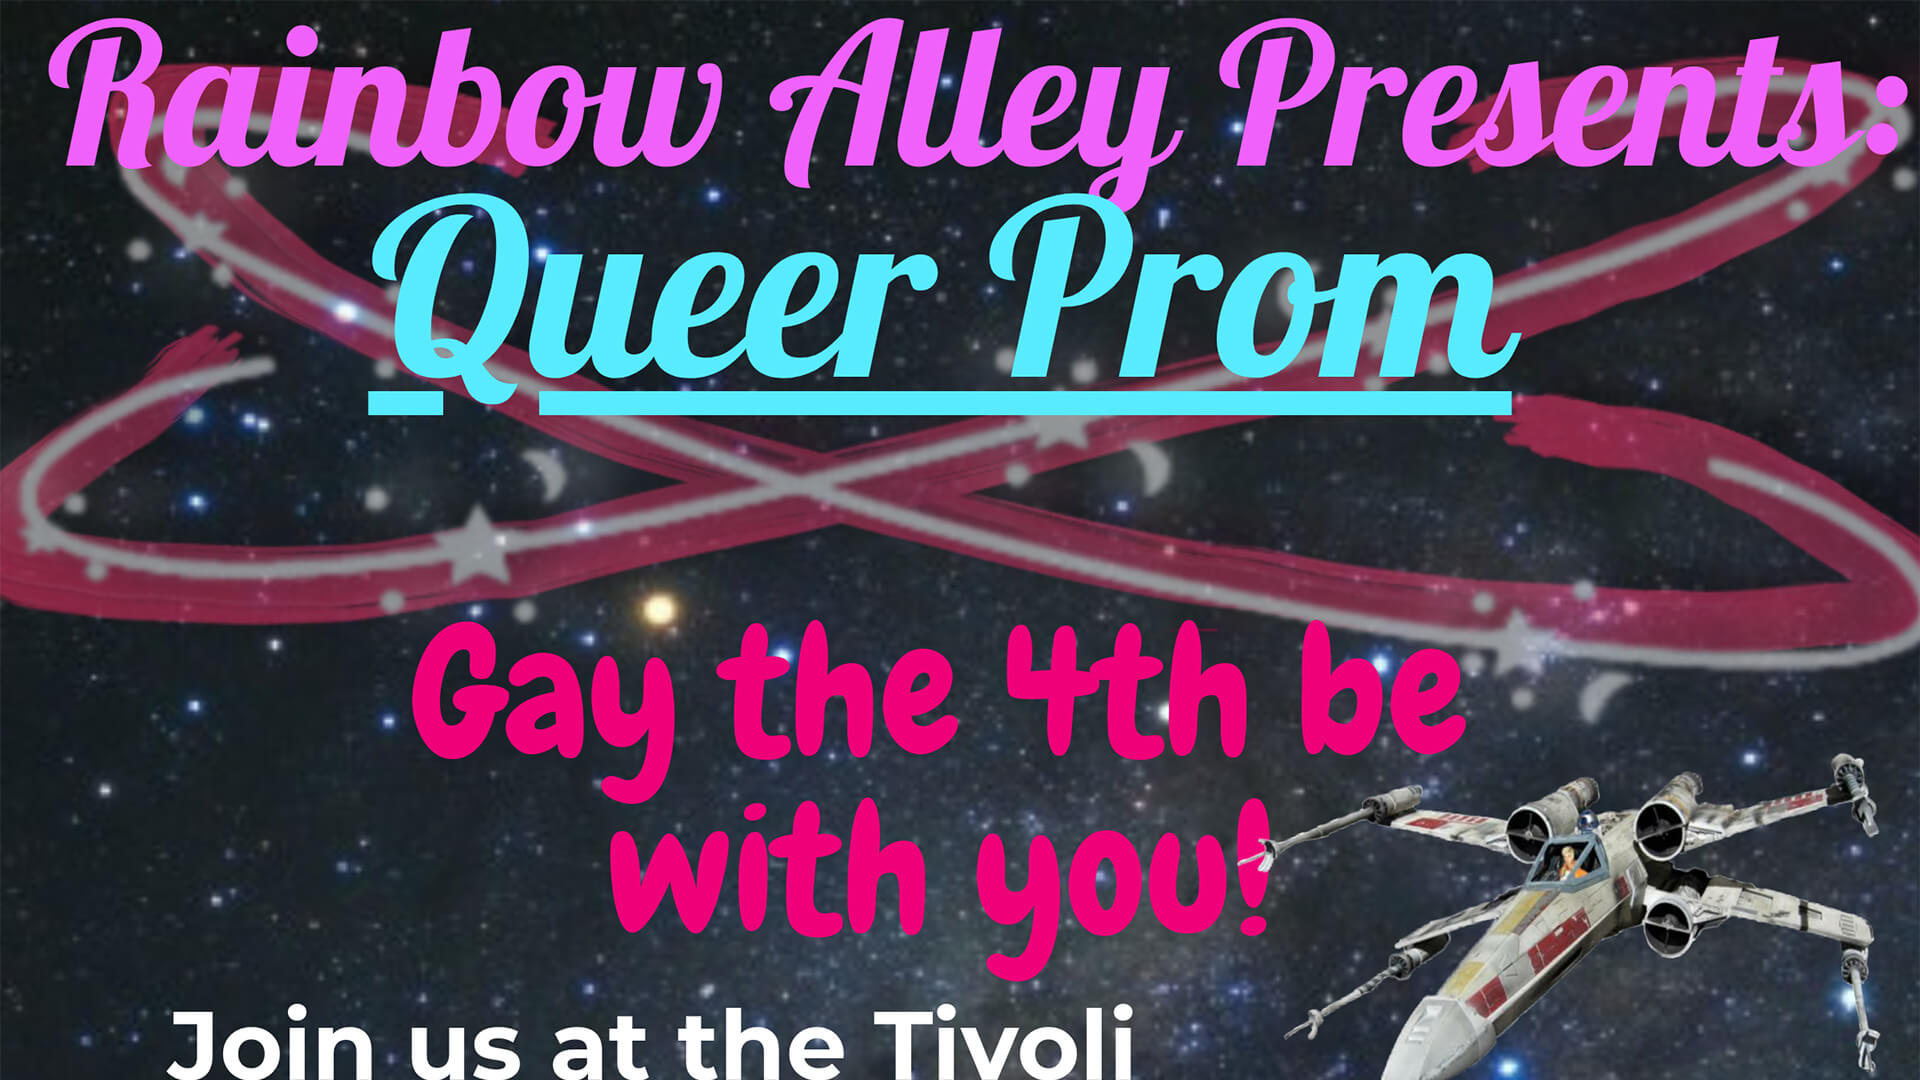 Queer Prom 2019: Gay the 4th Be With You